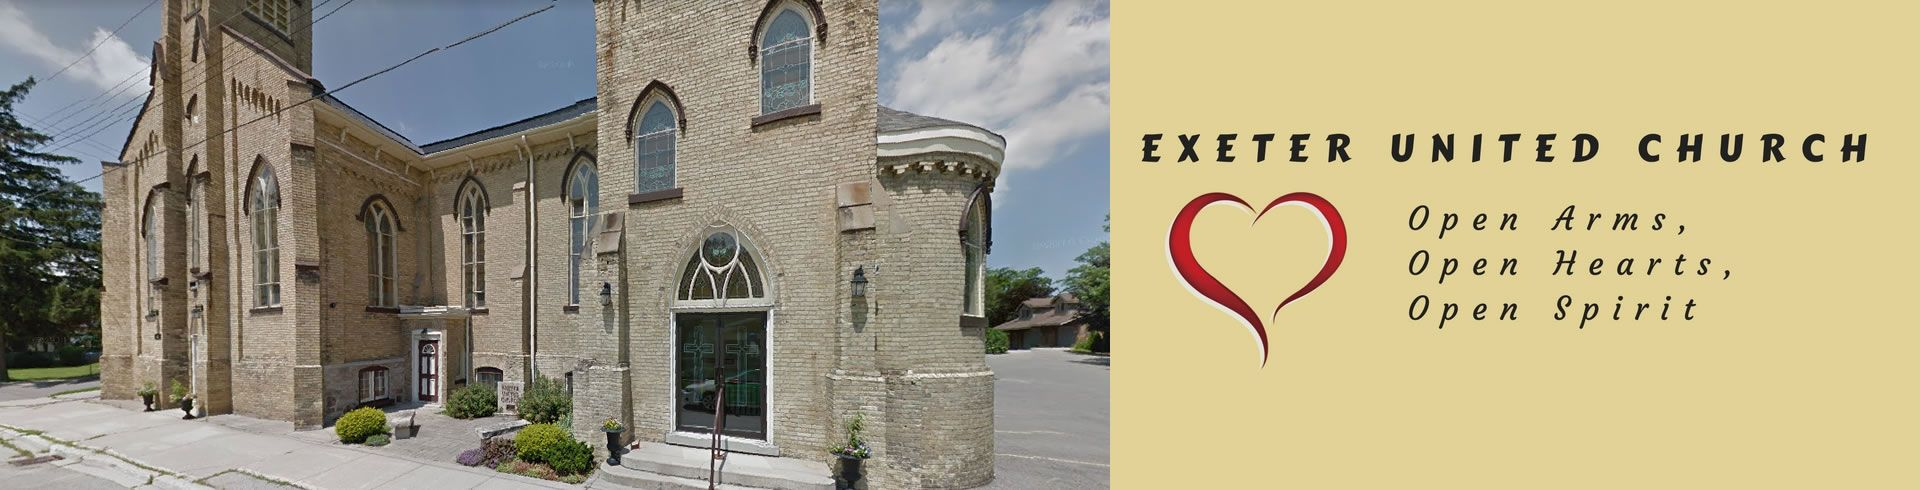 Exeter United Church